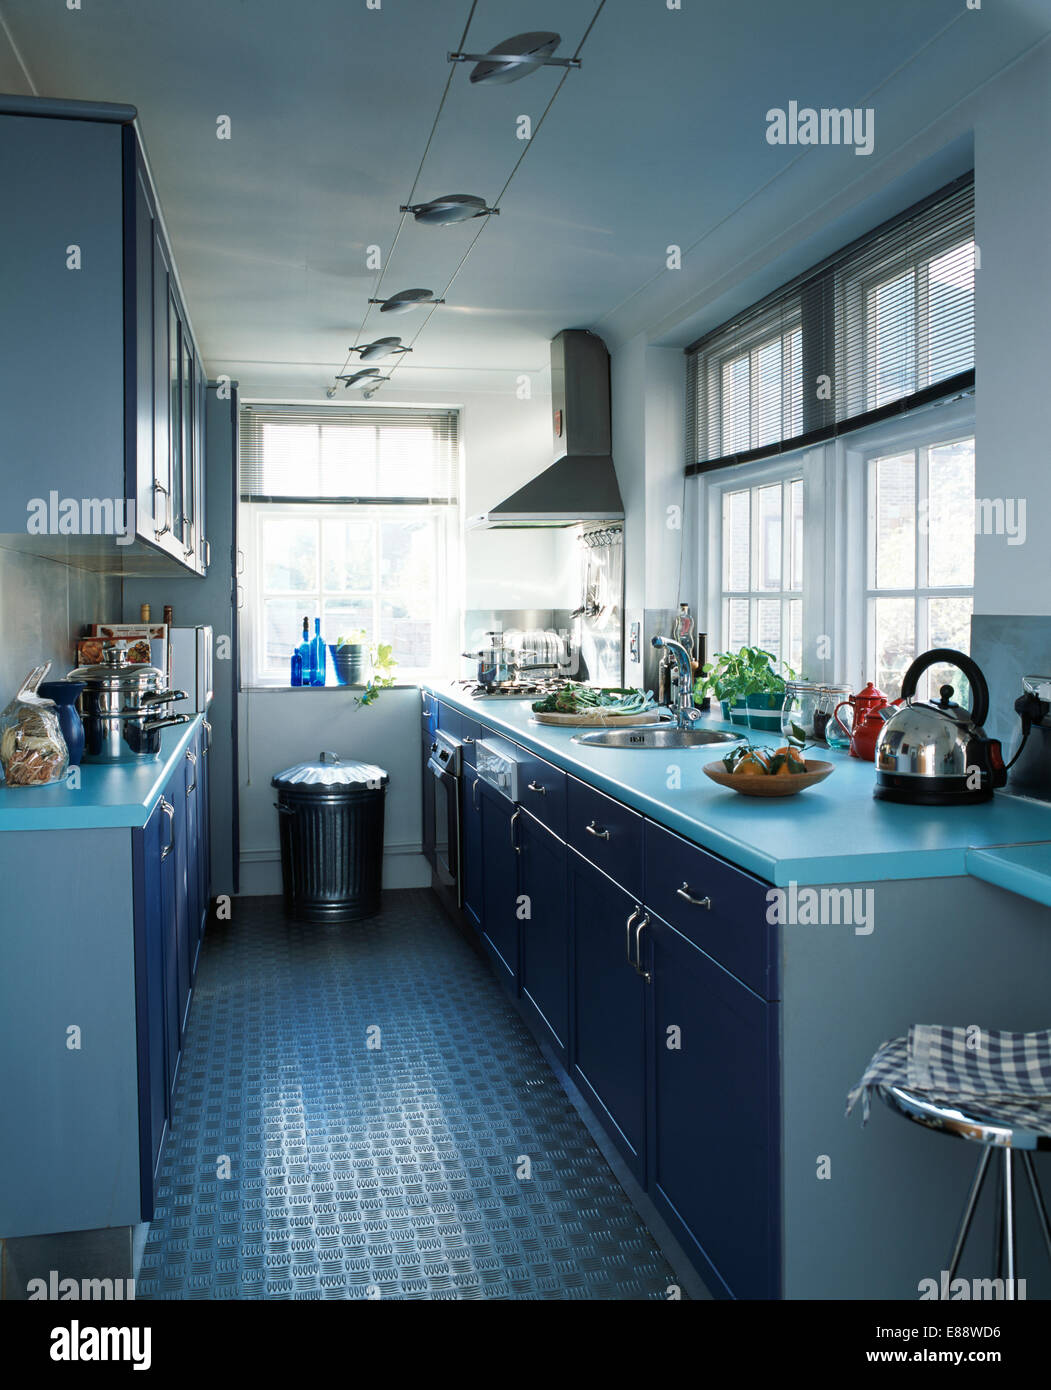 Rubber Floor Kitchen Rubber Flooring In Modern Galley Kitchen With Pale Blue Worktops